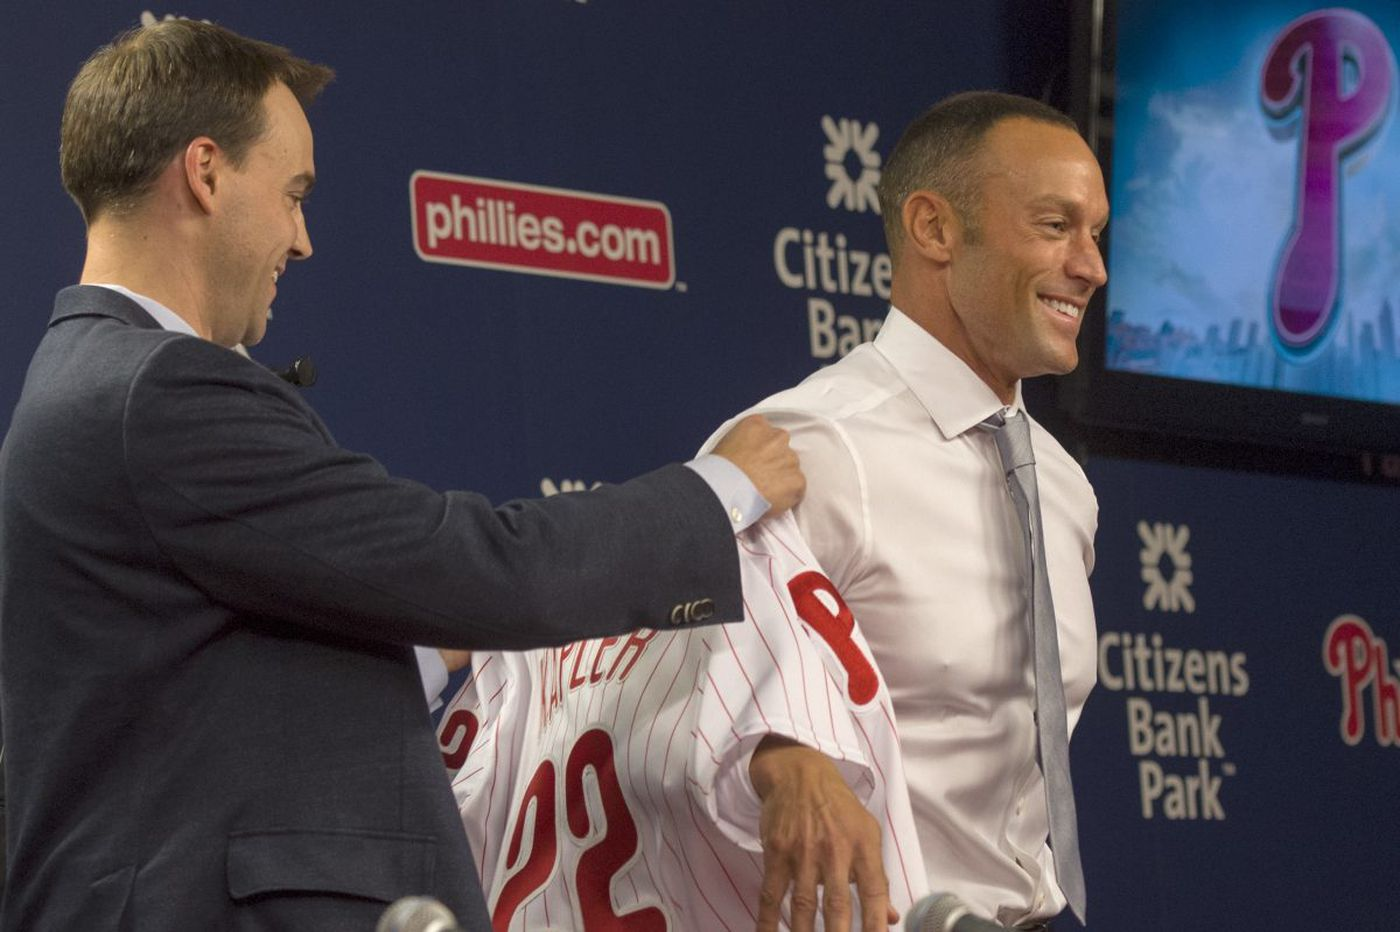 Challenge for Gabe Kapler will be getting his message across to Phillies players